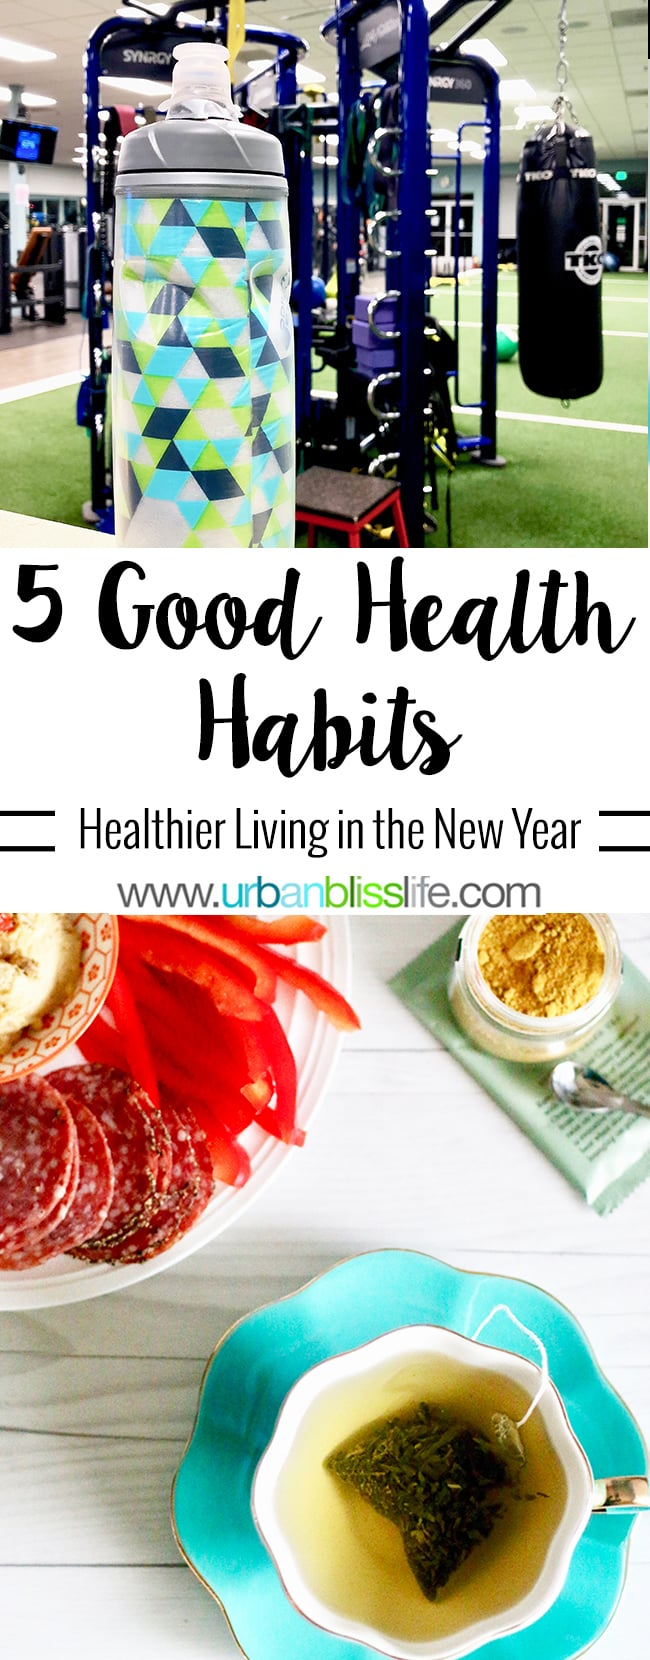 good health habits for the new year dietary supplements